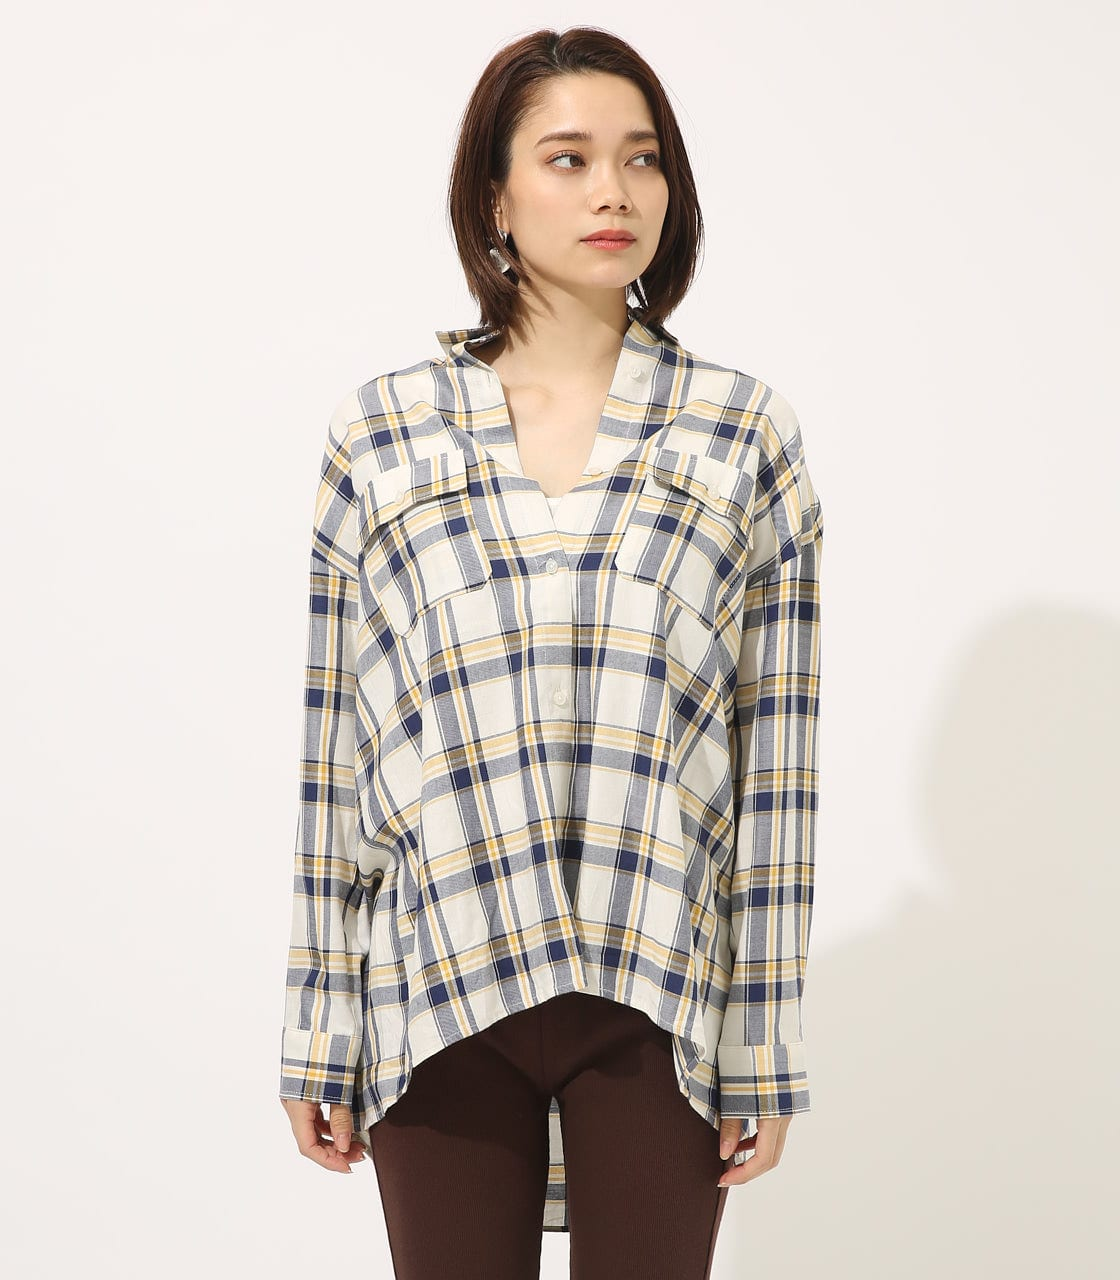 【AZUL BY MOUSSY】MADRAS CHECK SHIRT【MOOK50掲載 90135】 詳細画像 柄WHT 4